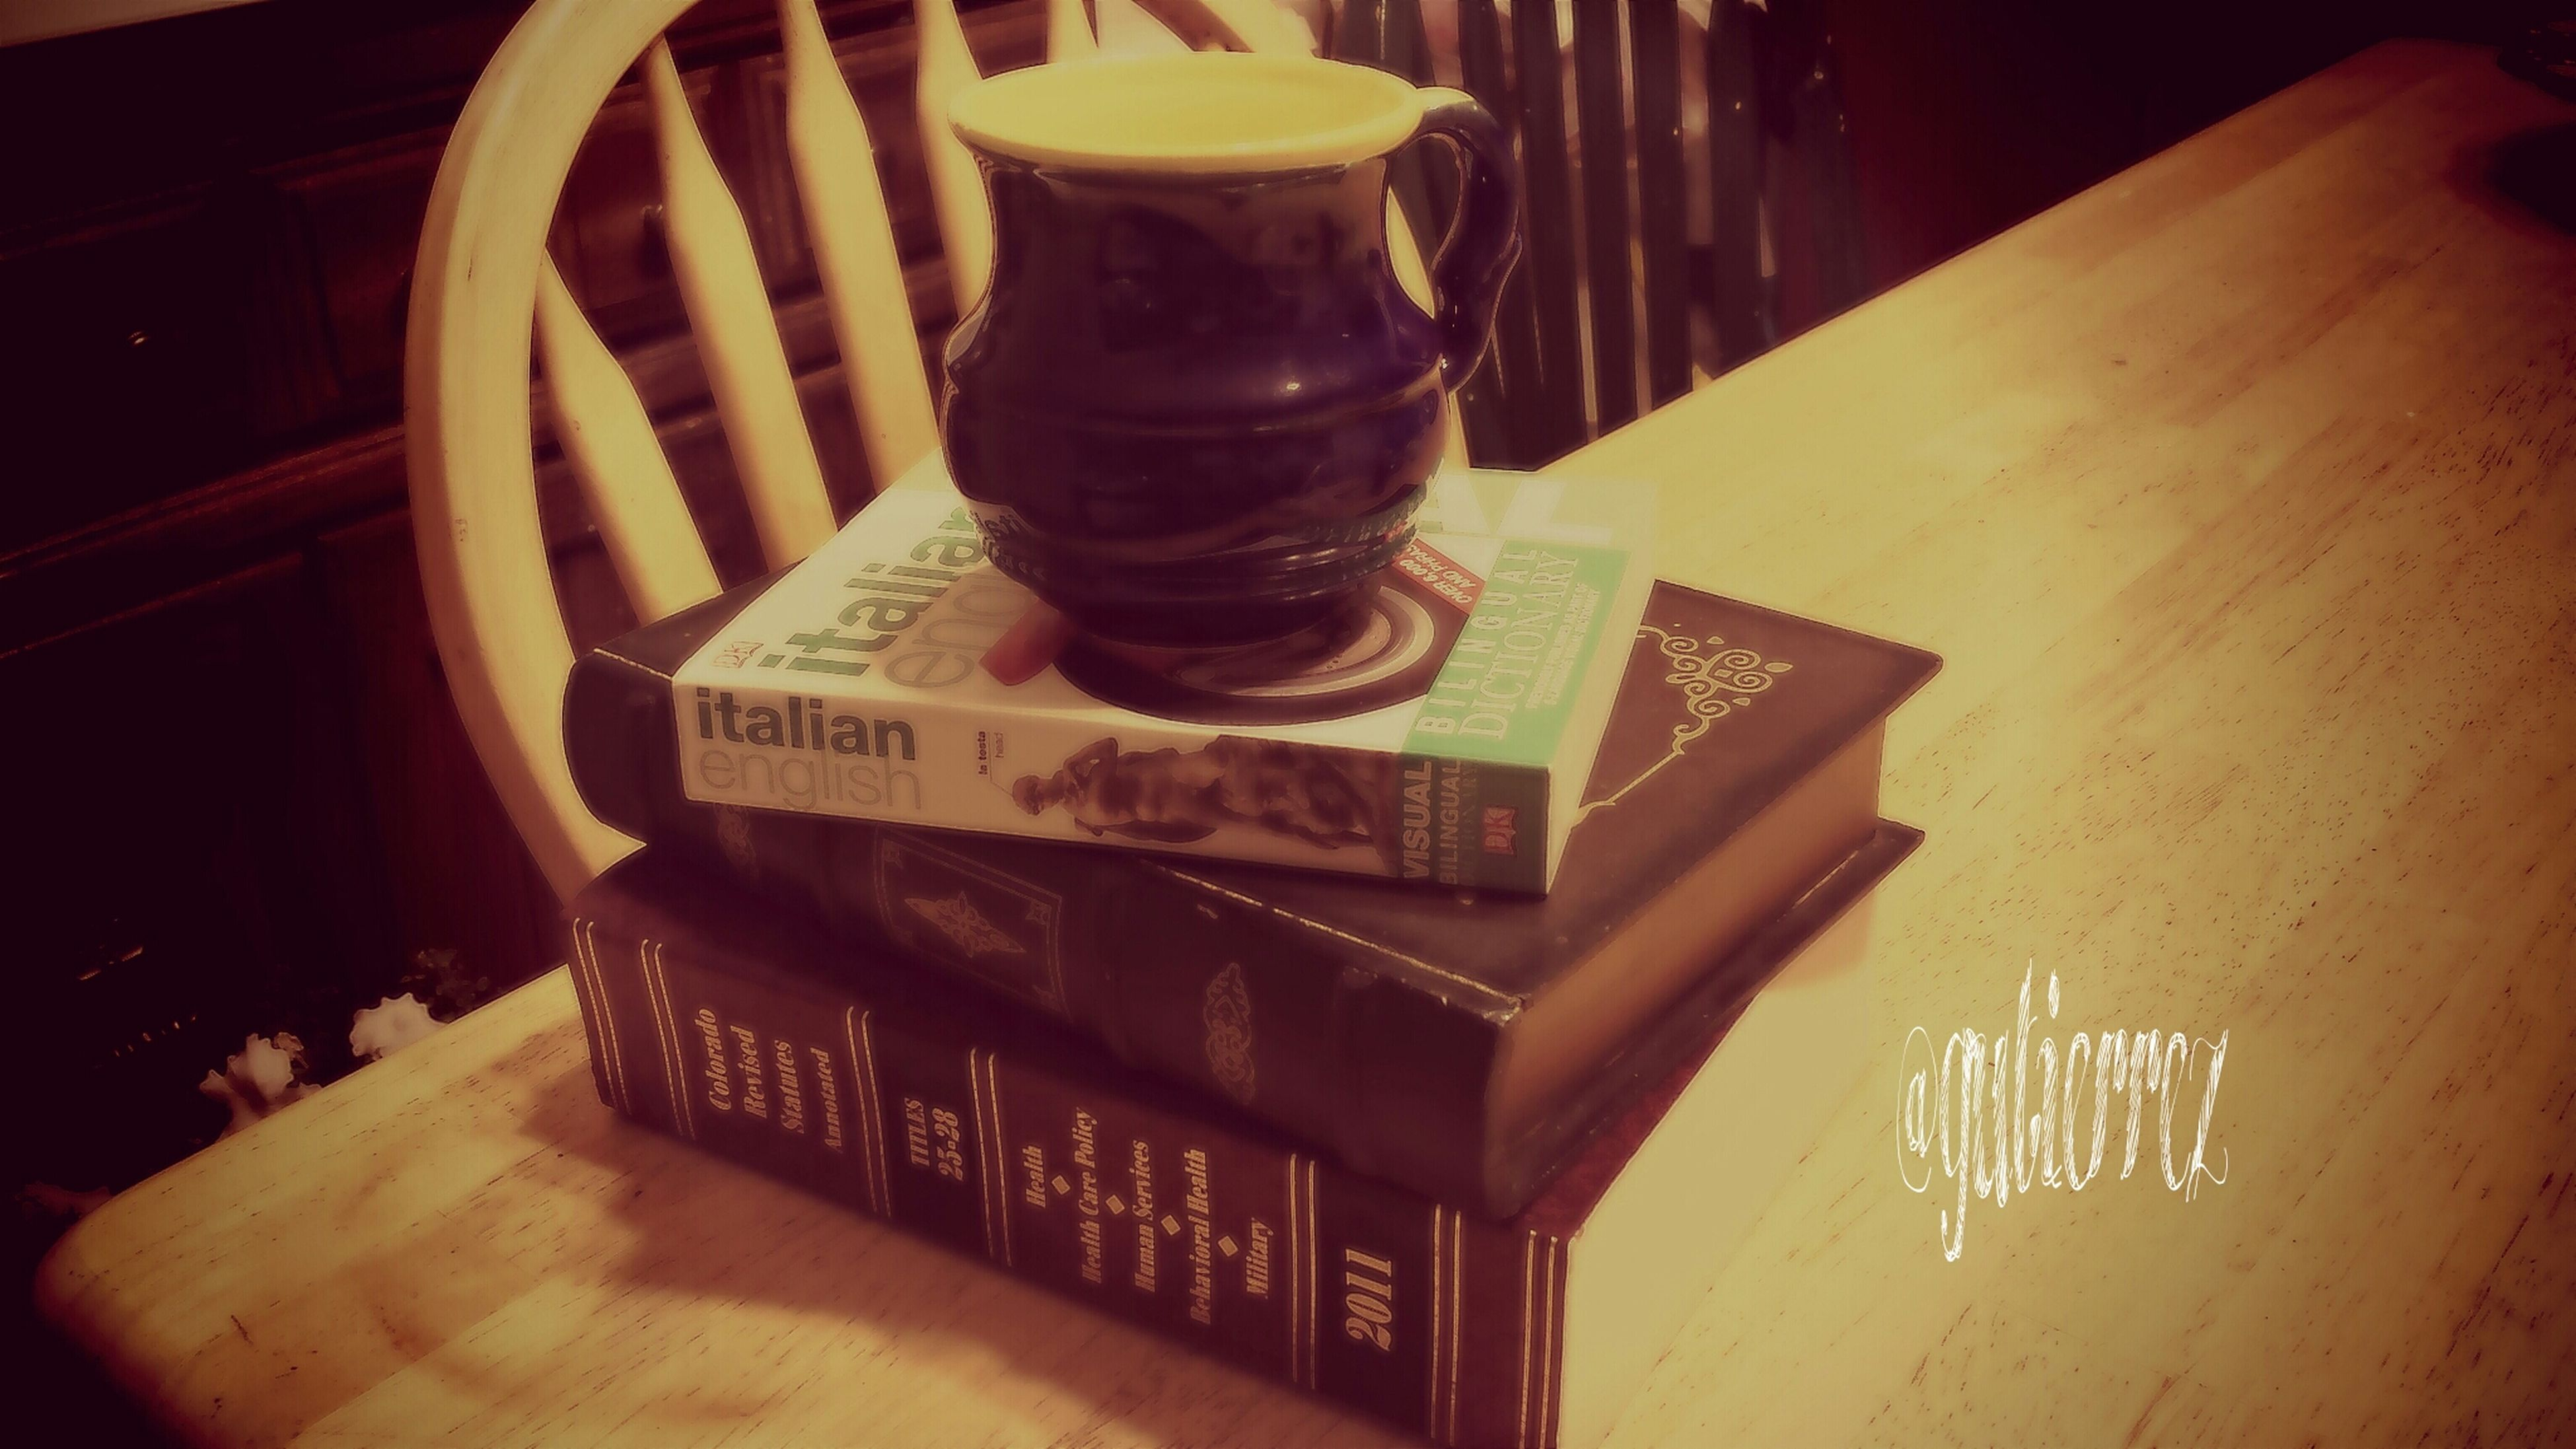 indoors, text, table, western script, communication, wood - material, still life, high angle view, no people, food and drink, non-western script, close-up, book, low angle view, restaurant, paper, architecture, built structure, day, shelf